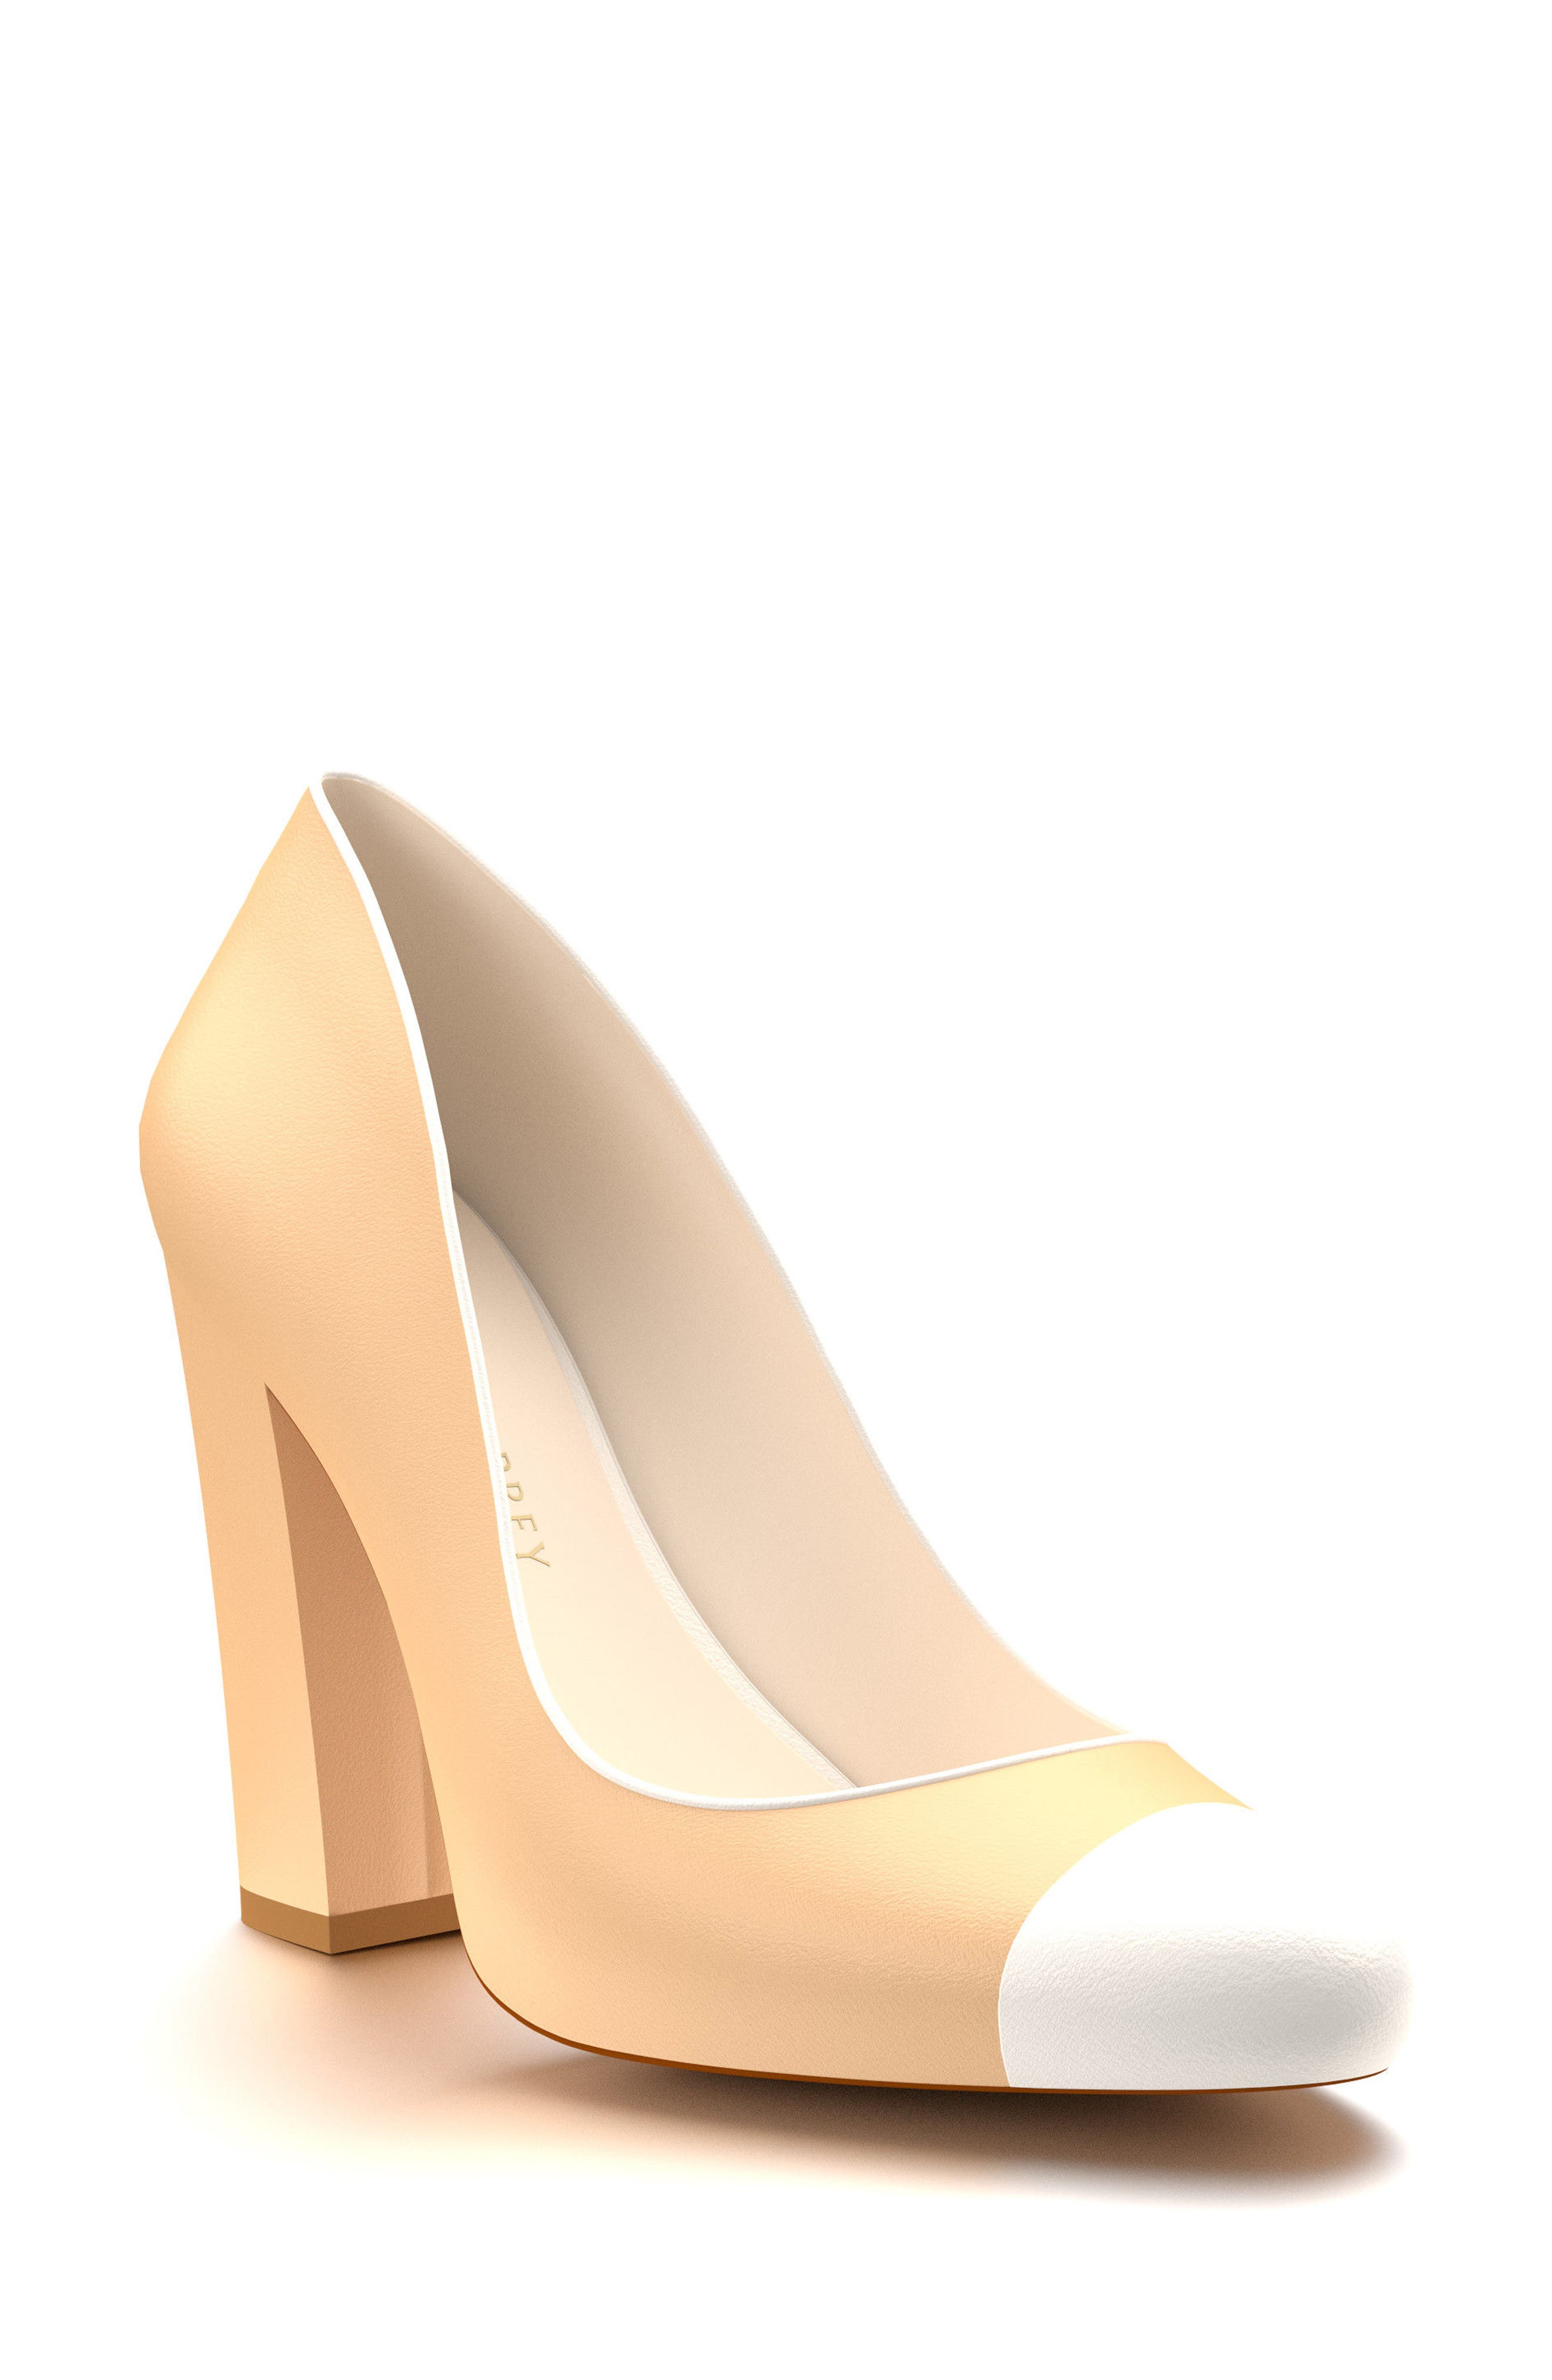 Shoes of Prey Cap Toe Block Heel Pump (Women)